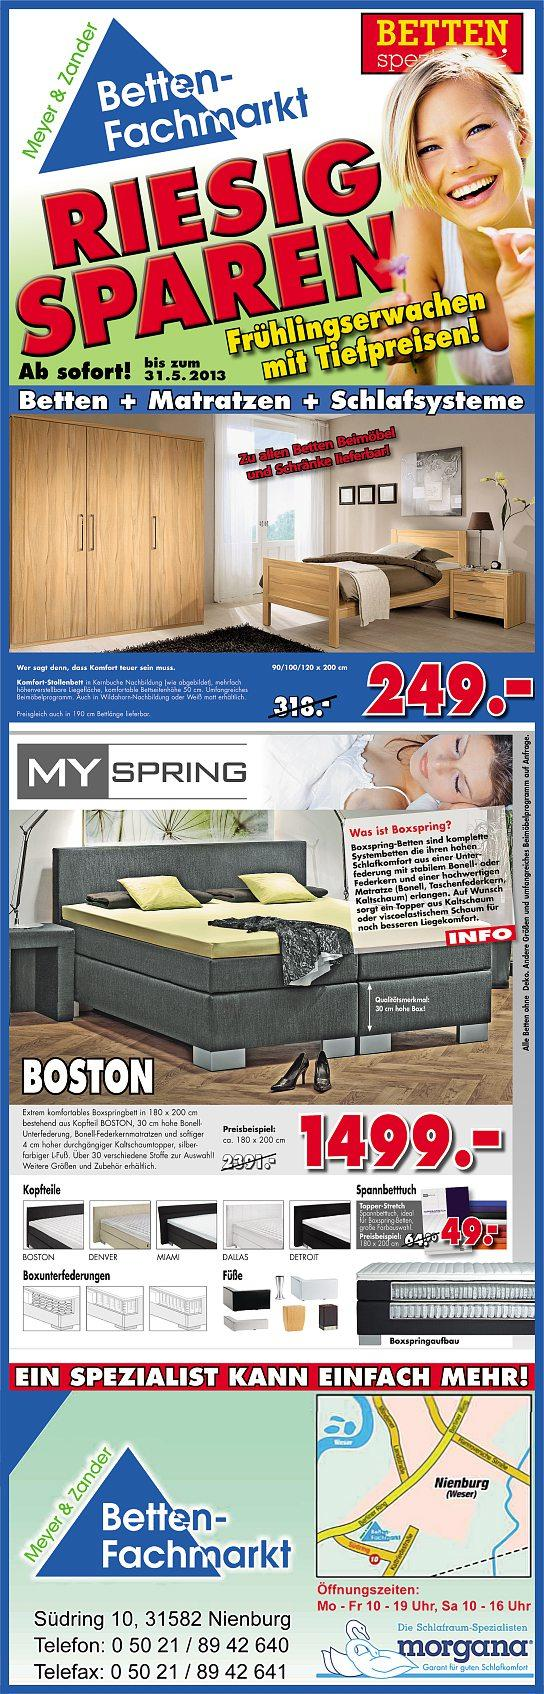 am sonntag im land kultur der zapperdockel und der wock figurentheater in nienburg s 6 pdf. Black Bedroom Furniture Sets. Home Design Ideas